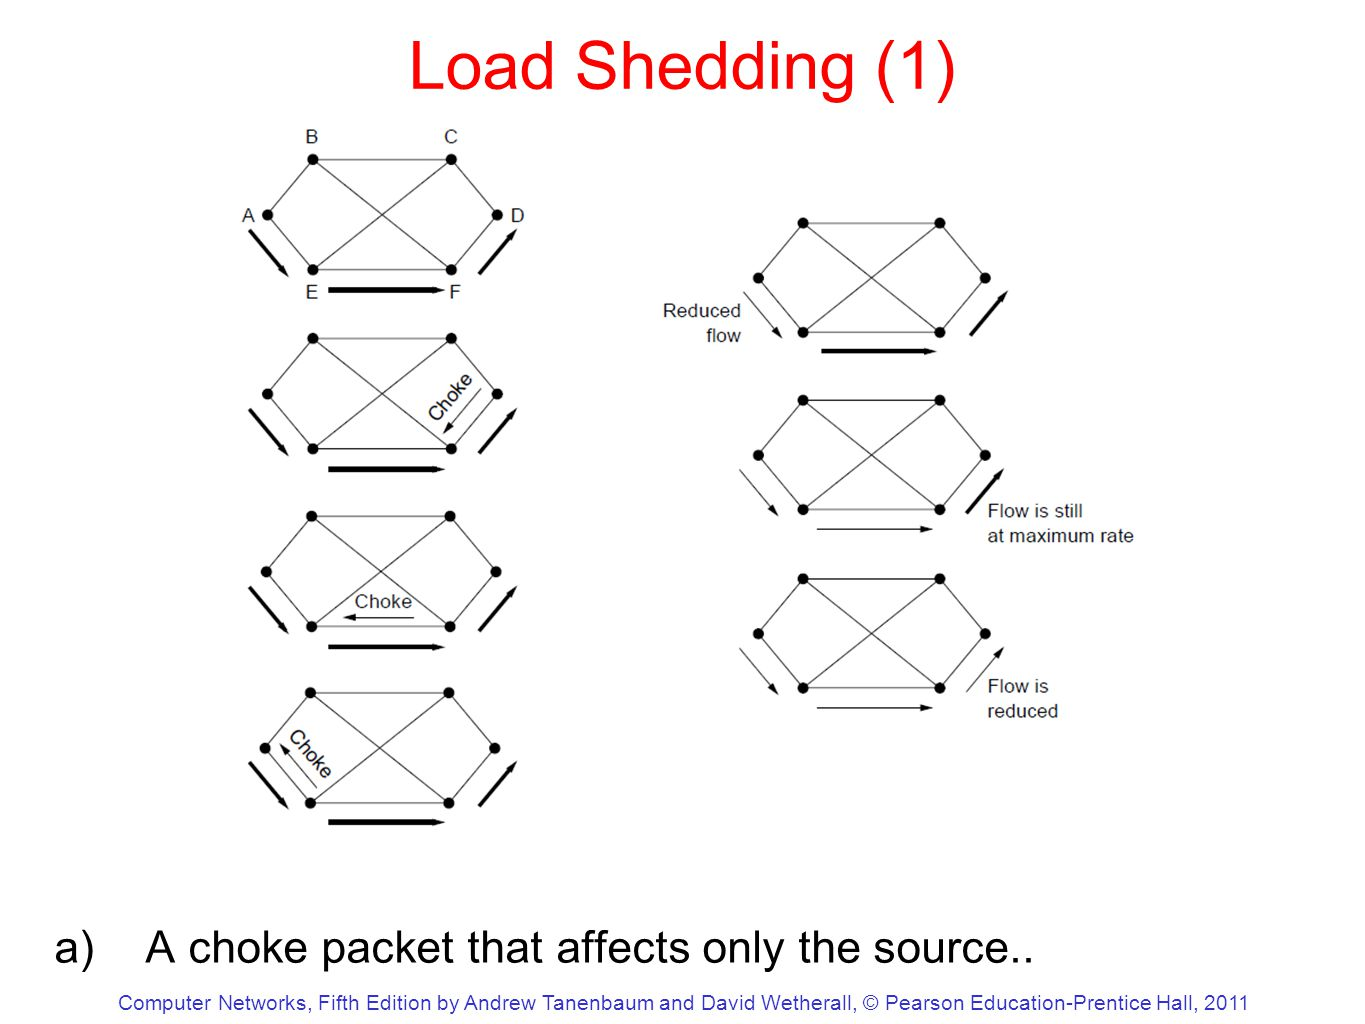 Computer Networks, Fifth Edition by Andrew Tanenbaum and David Wetherall, © Pearson Education-Prentice Hall, 2011 Load Shedding (1) a)A choke packet that affects only the source..